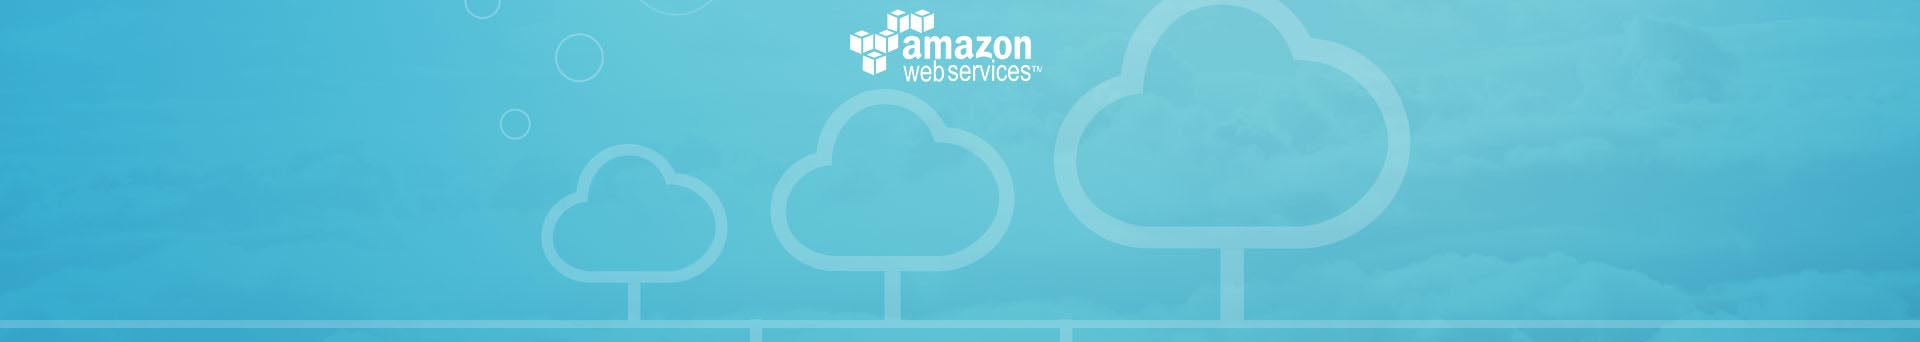 Veeam Cloud Connect in Amazon AWS: Services of the Cloud 137